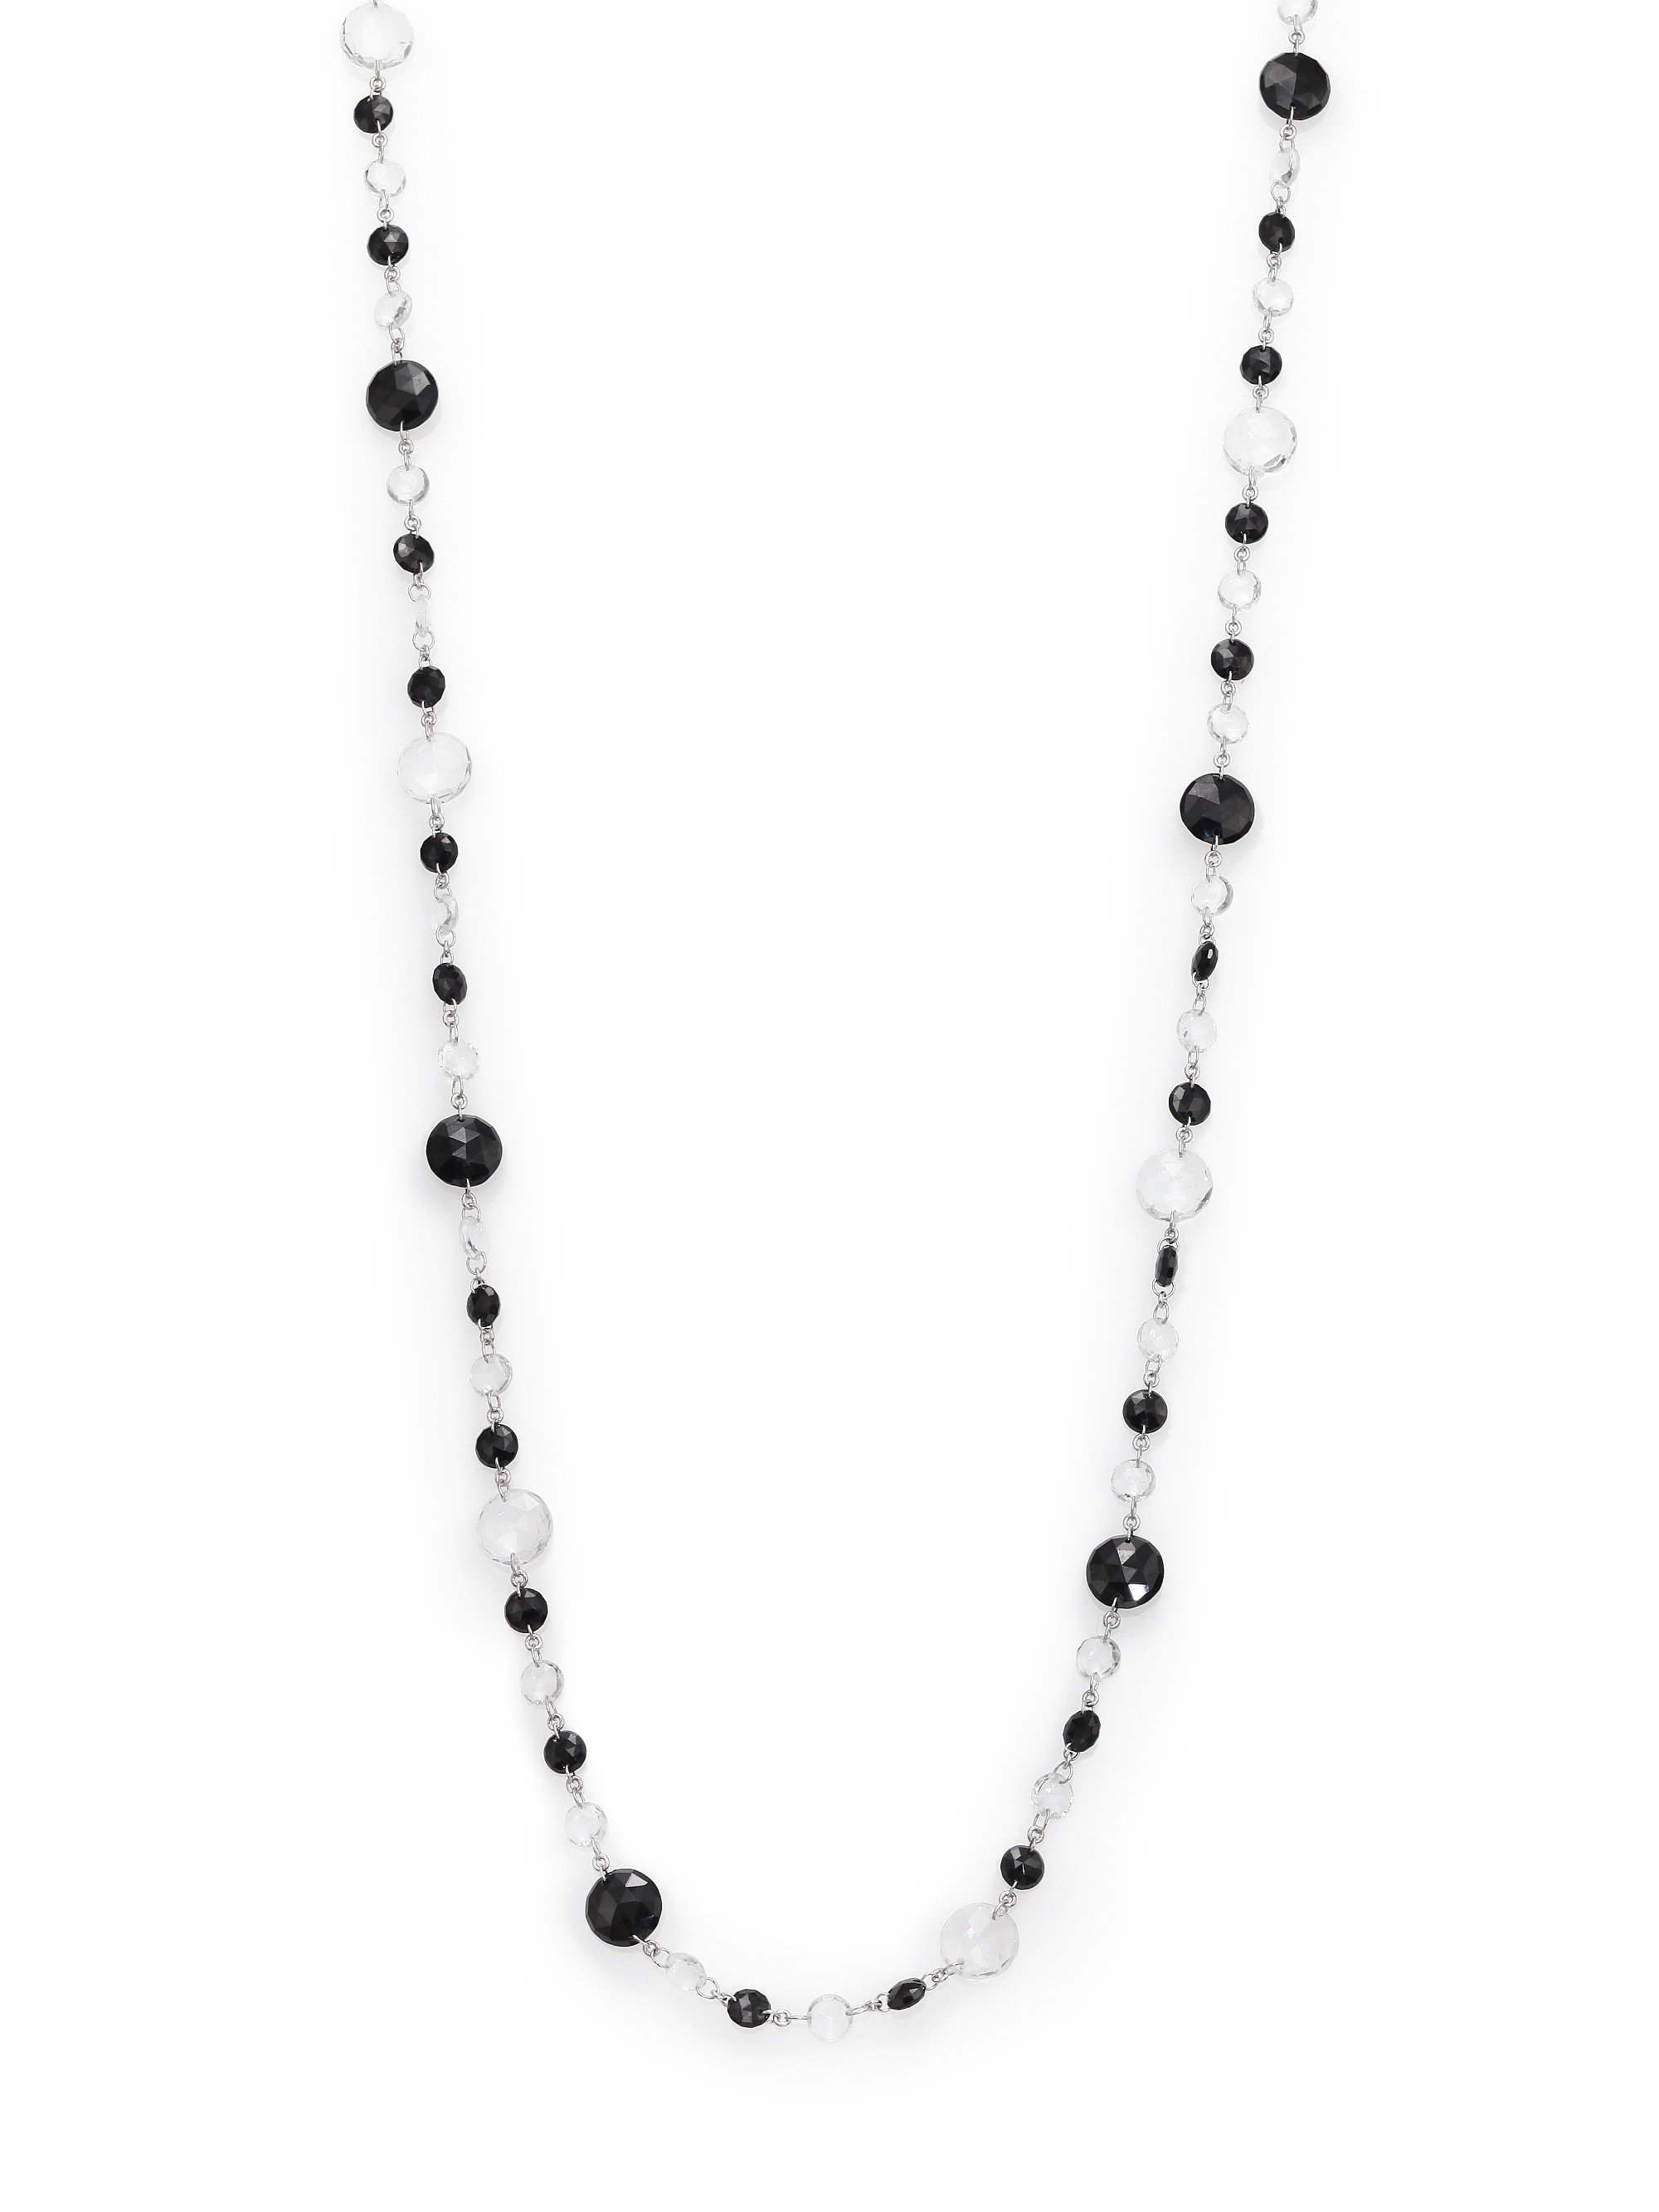 Coomi Opera Diamond Crystal & Black Spinel Beaded Necklace in